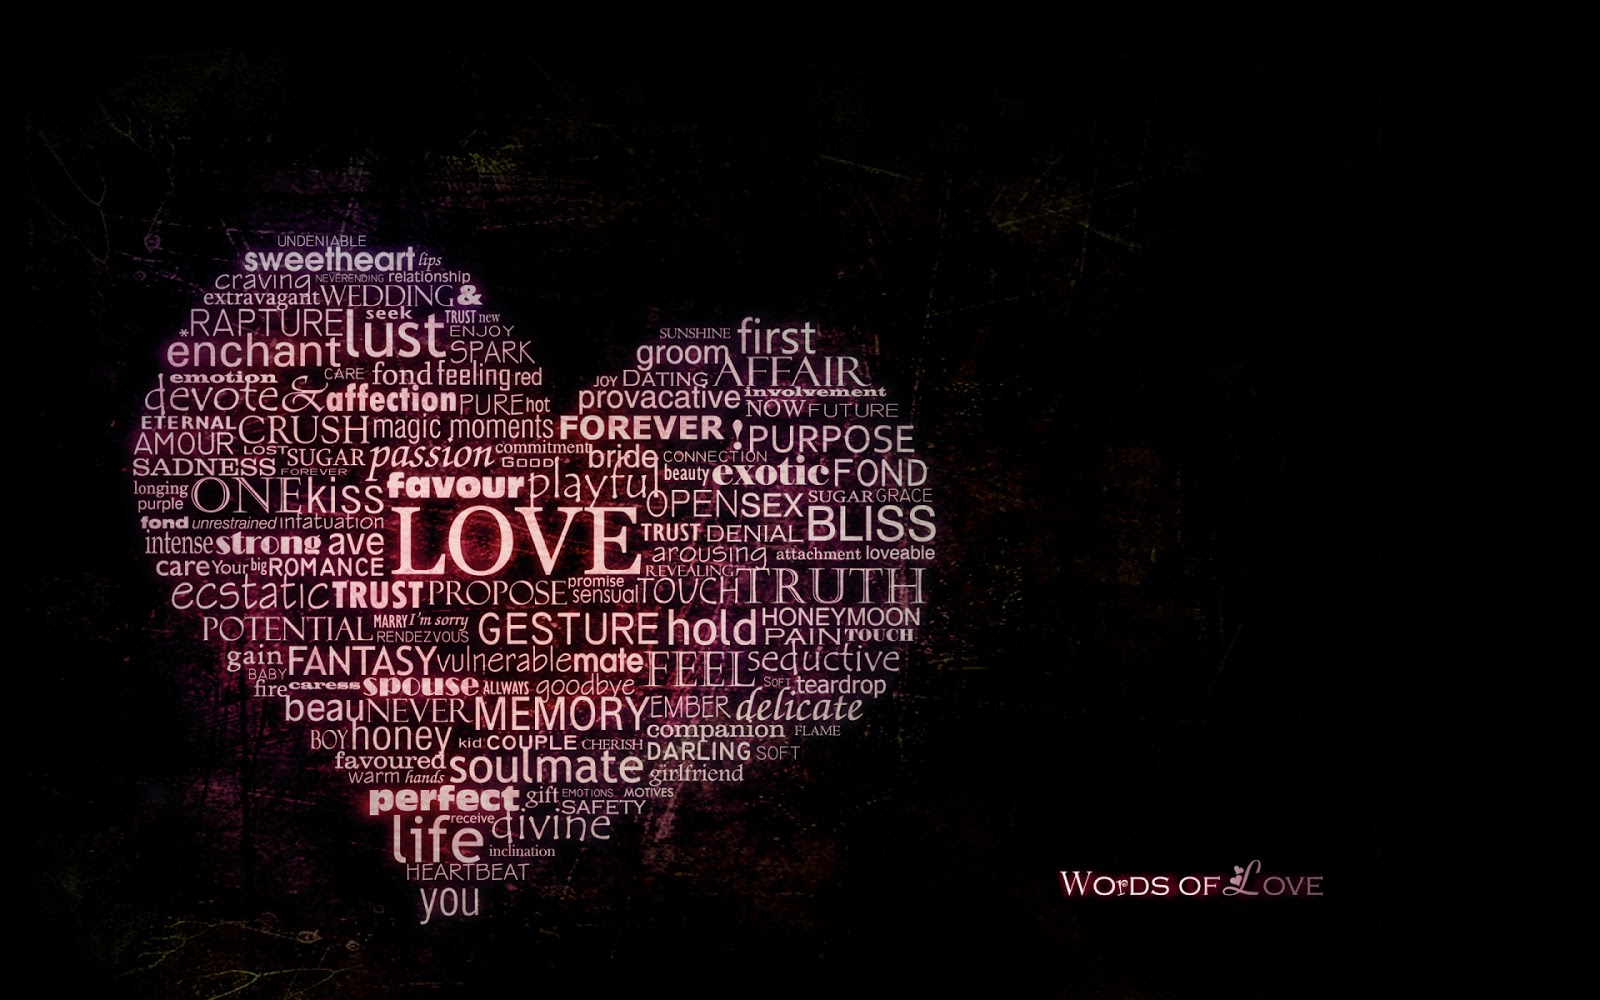 Words of Love 1920x1200 Wallpaper